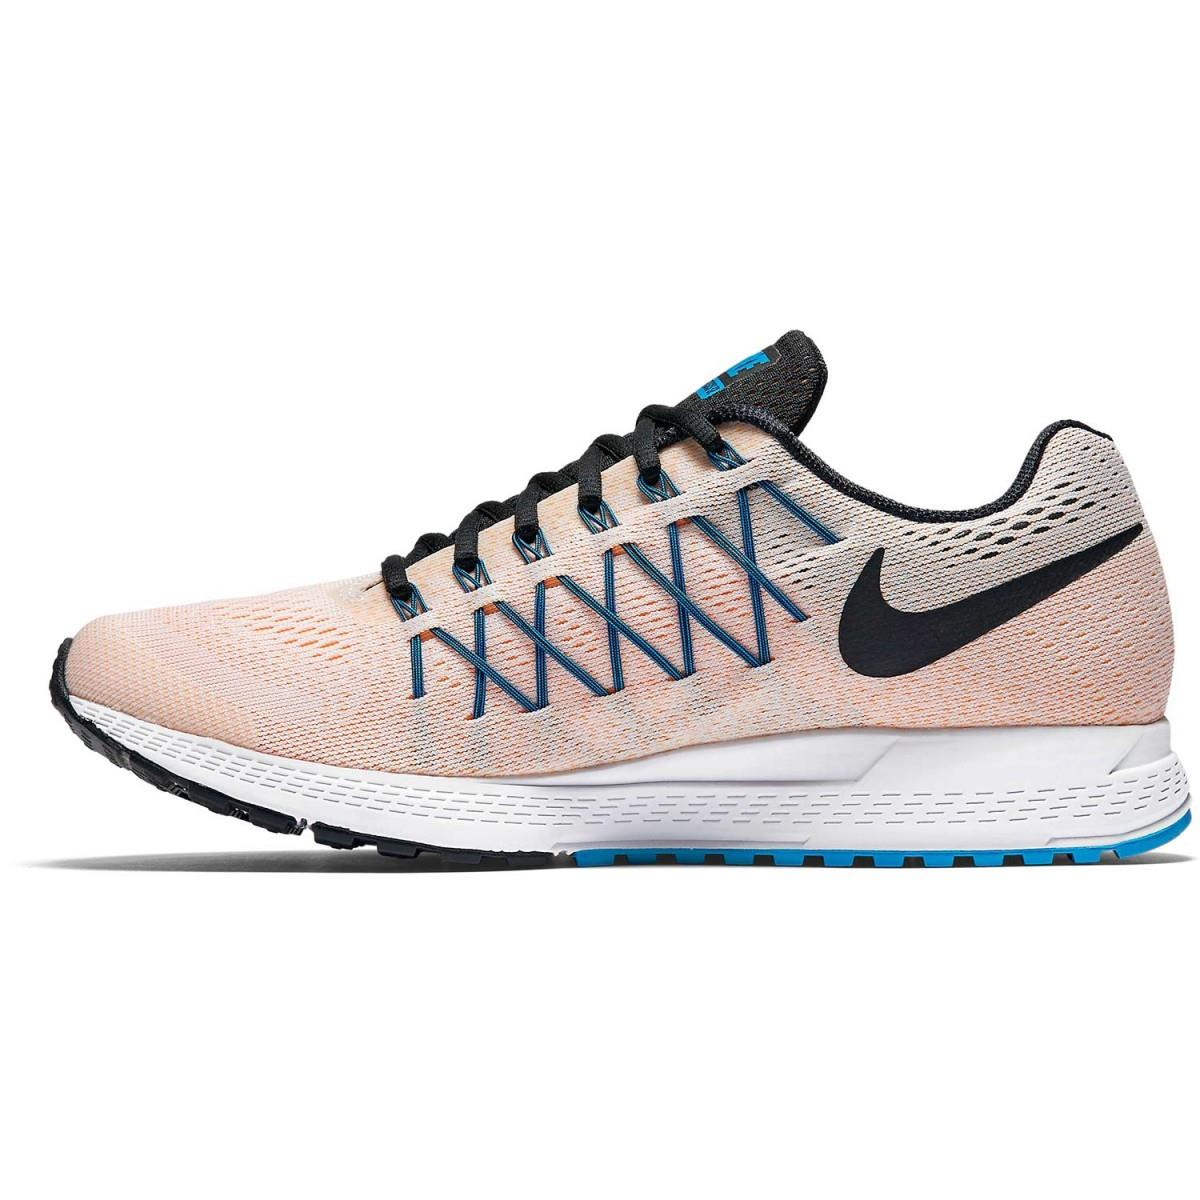 the best attitude 7e29f 20302 Nike 749340-101 AIR ZOOM PEGASUS 32 KOŞU AYAKKABISI